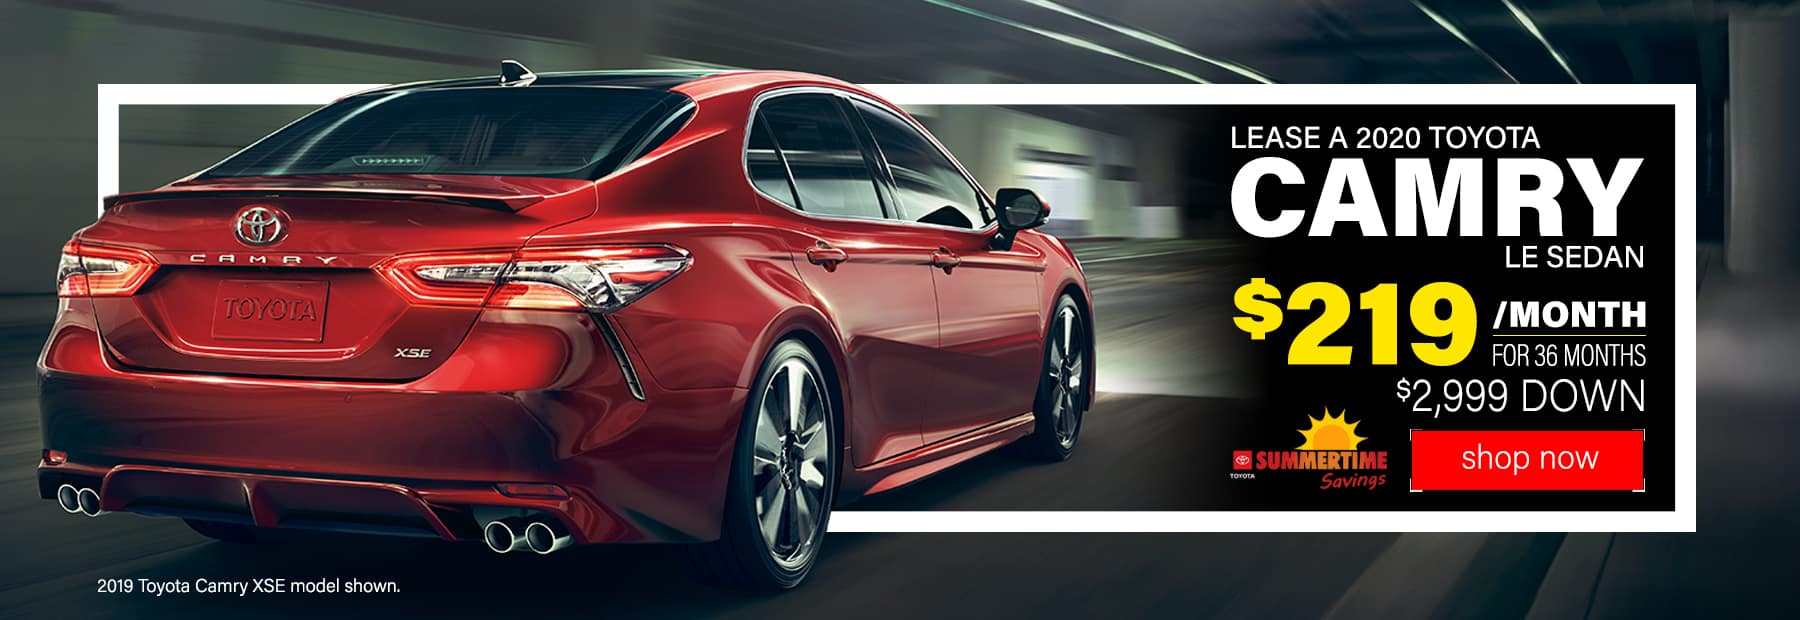 Lease a 2020 Toyota Camry LE Sedan for $219/mo. for 36 mos. with $2,999 down